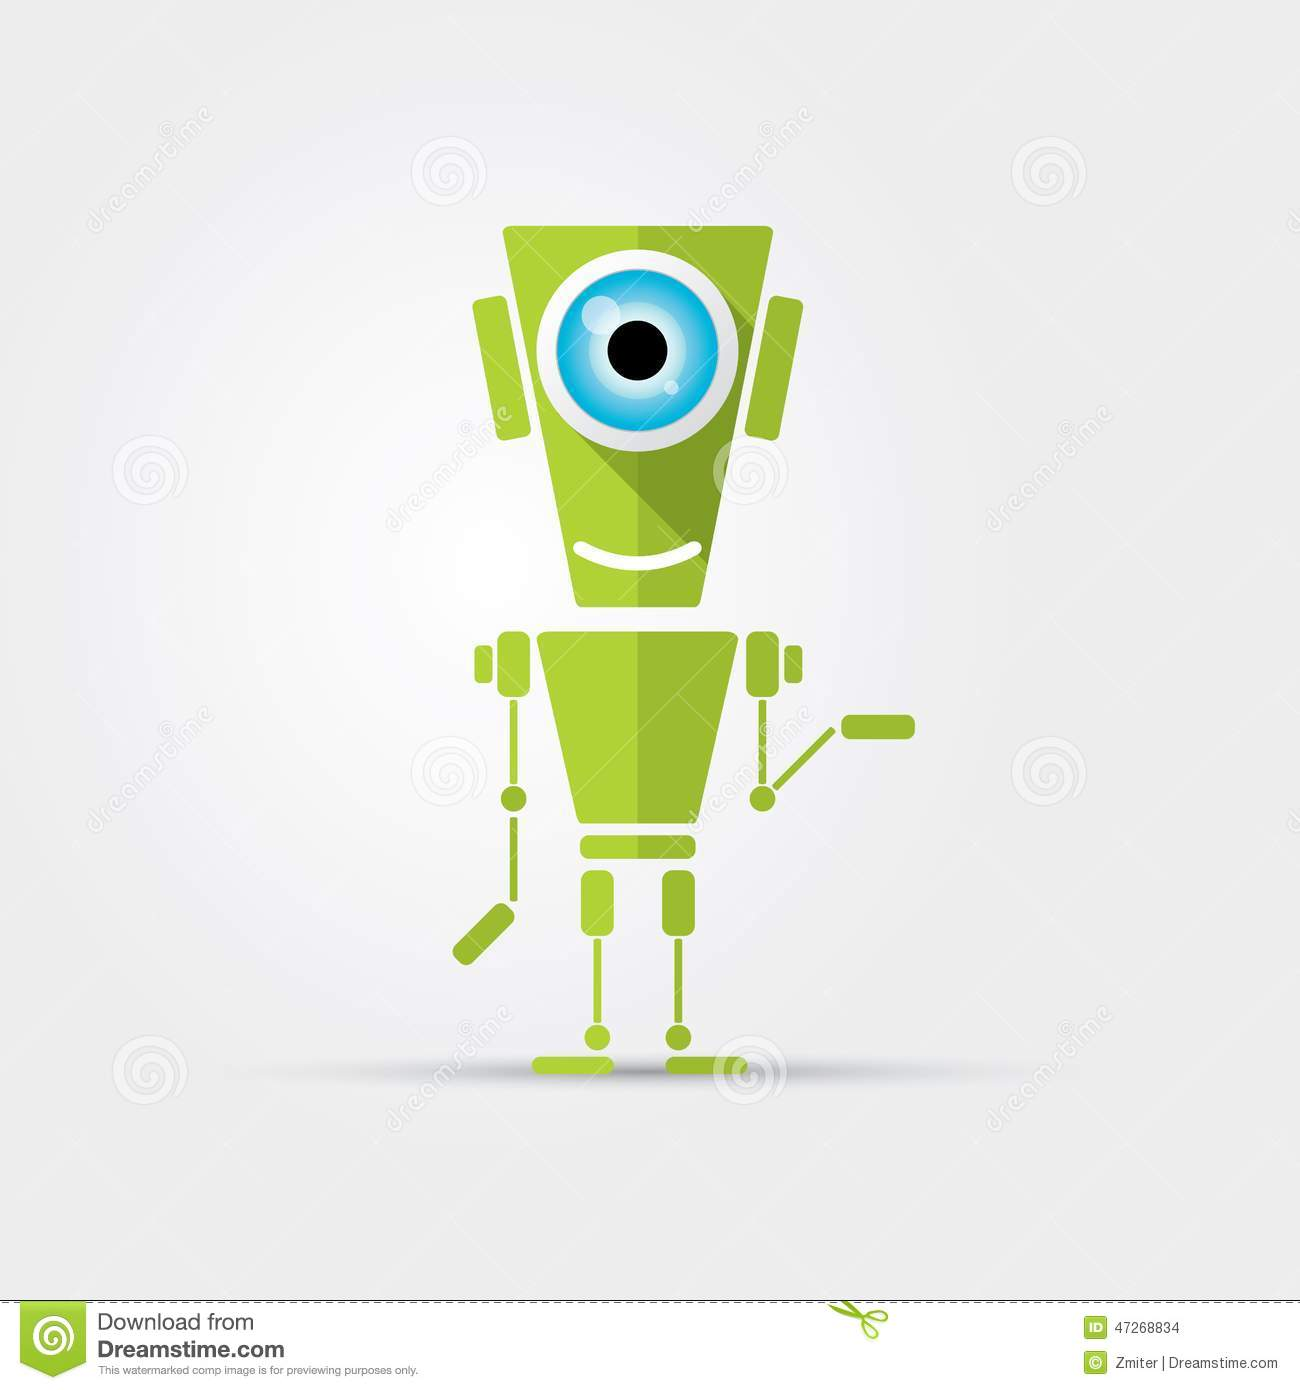 A Cartoon Character That Is Green : Cartoon character cute green robot stock vector image